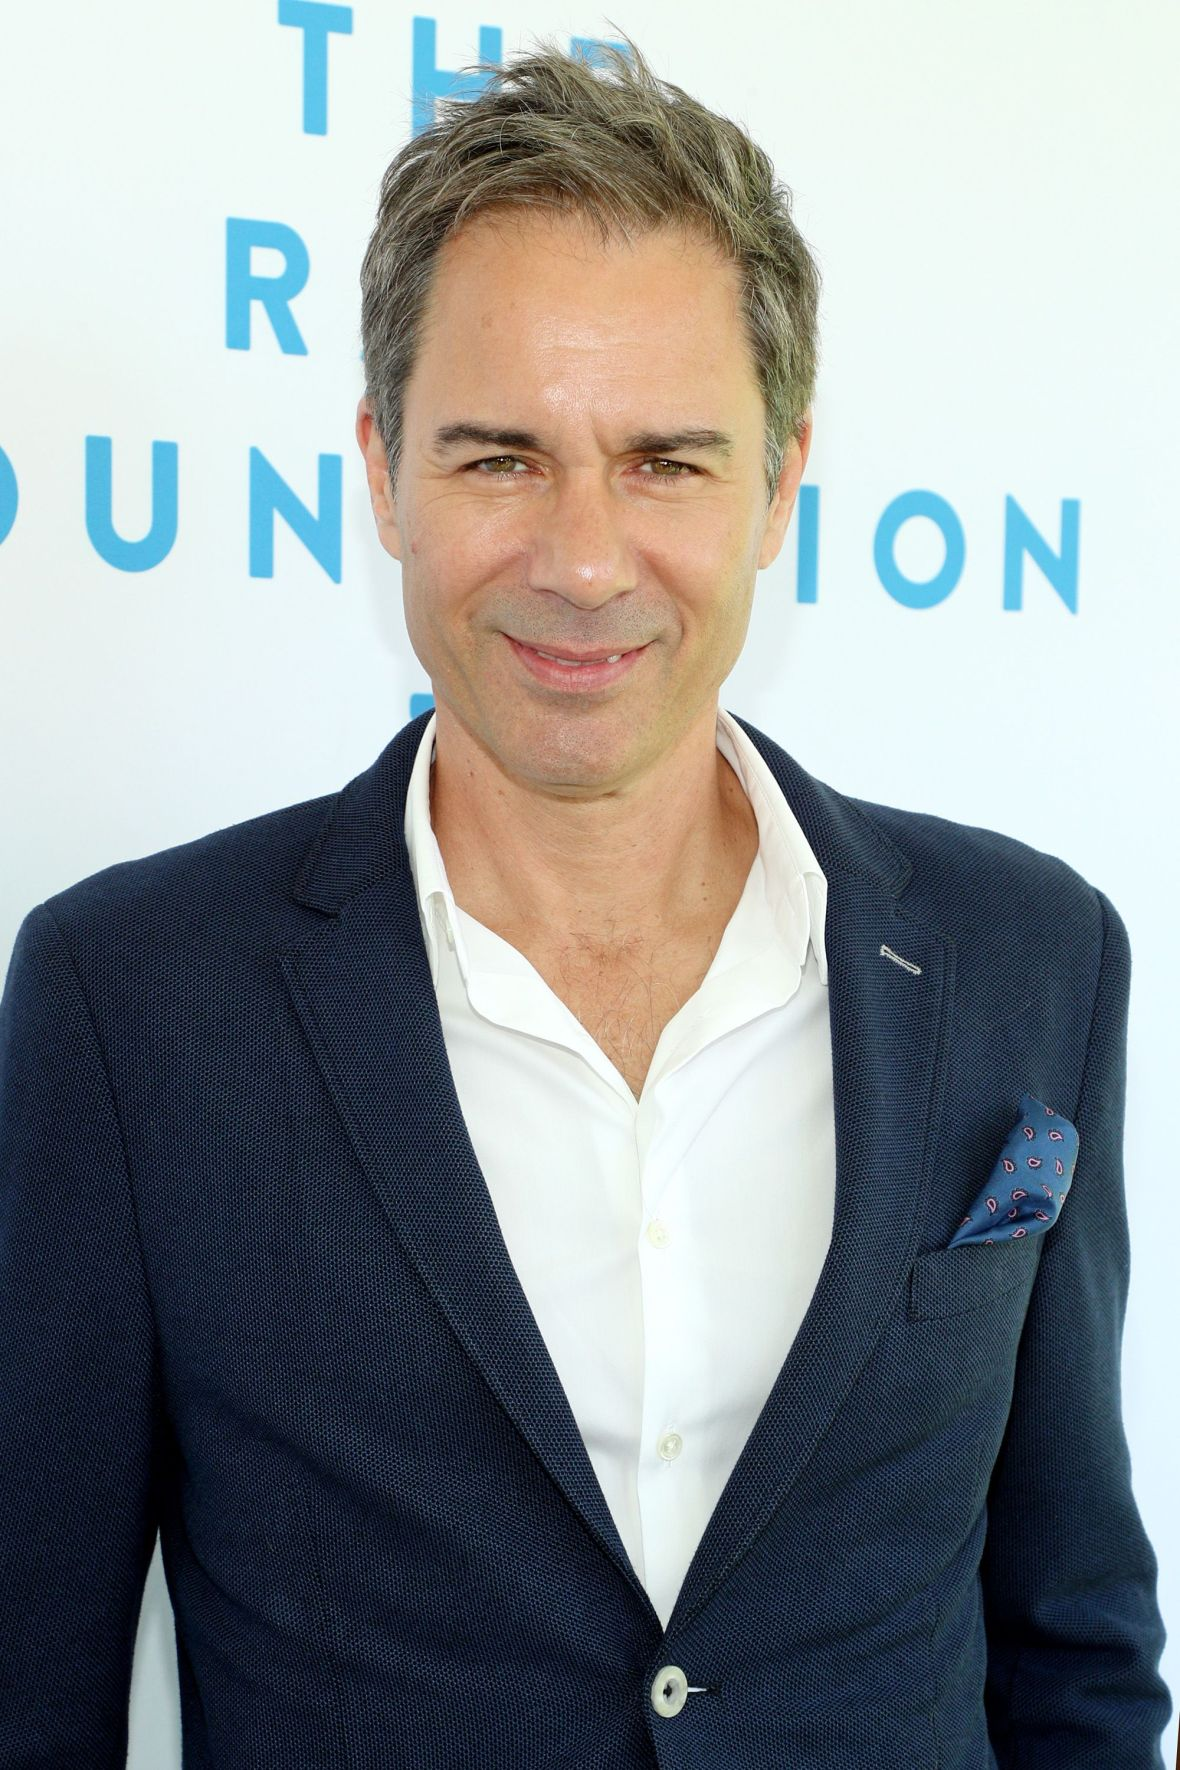 Eric McCormack in a Suit at The Rape Foundation's Annual Brunch 2019